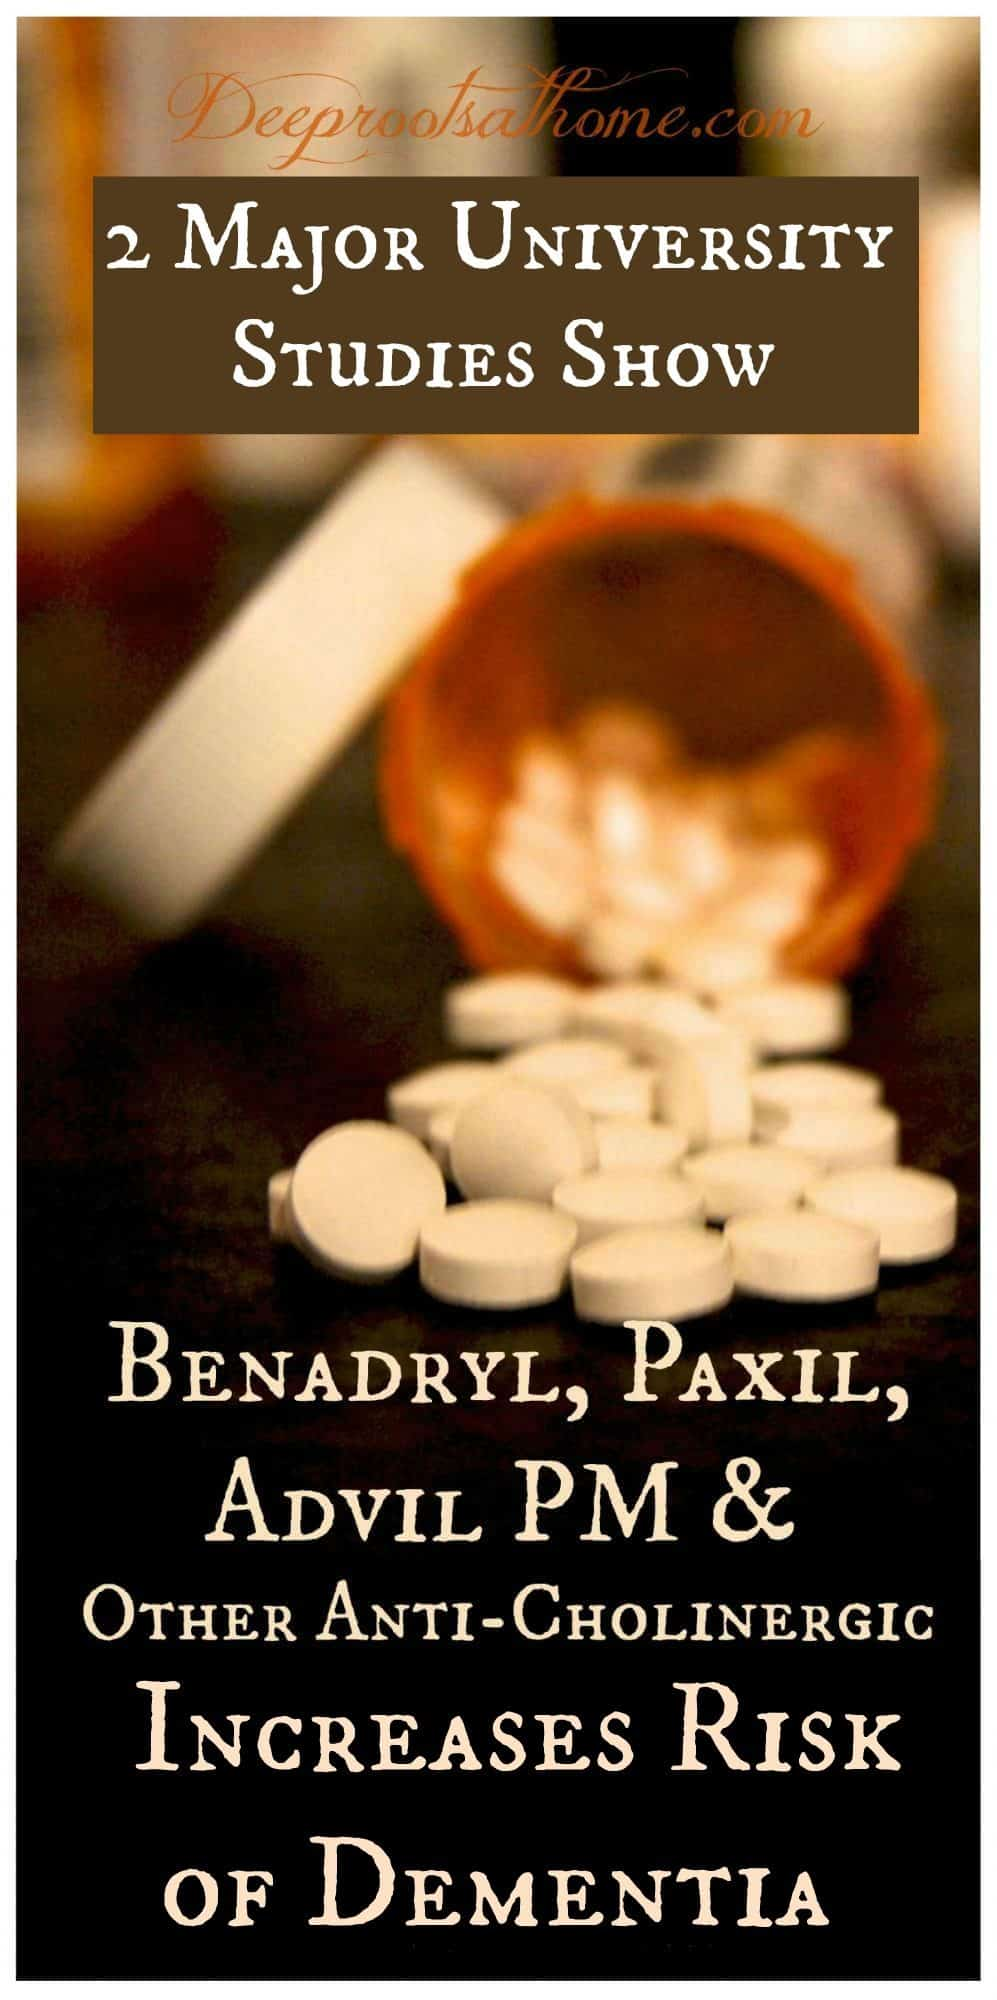 Benadryl, Paxil, Advil PM & Other Drugs Linked to Dementia. A bottle of spilled pills.